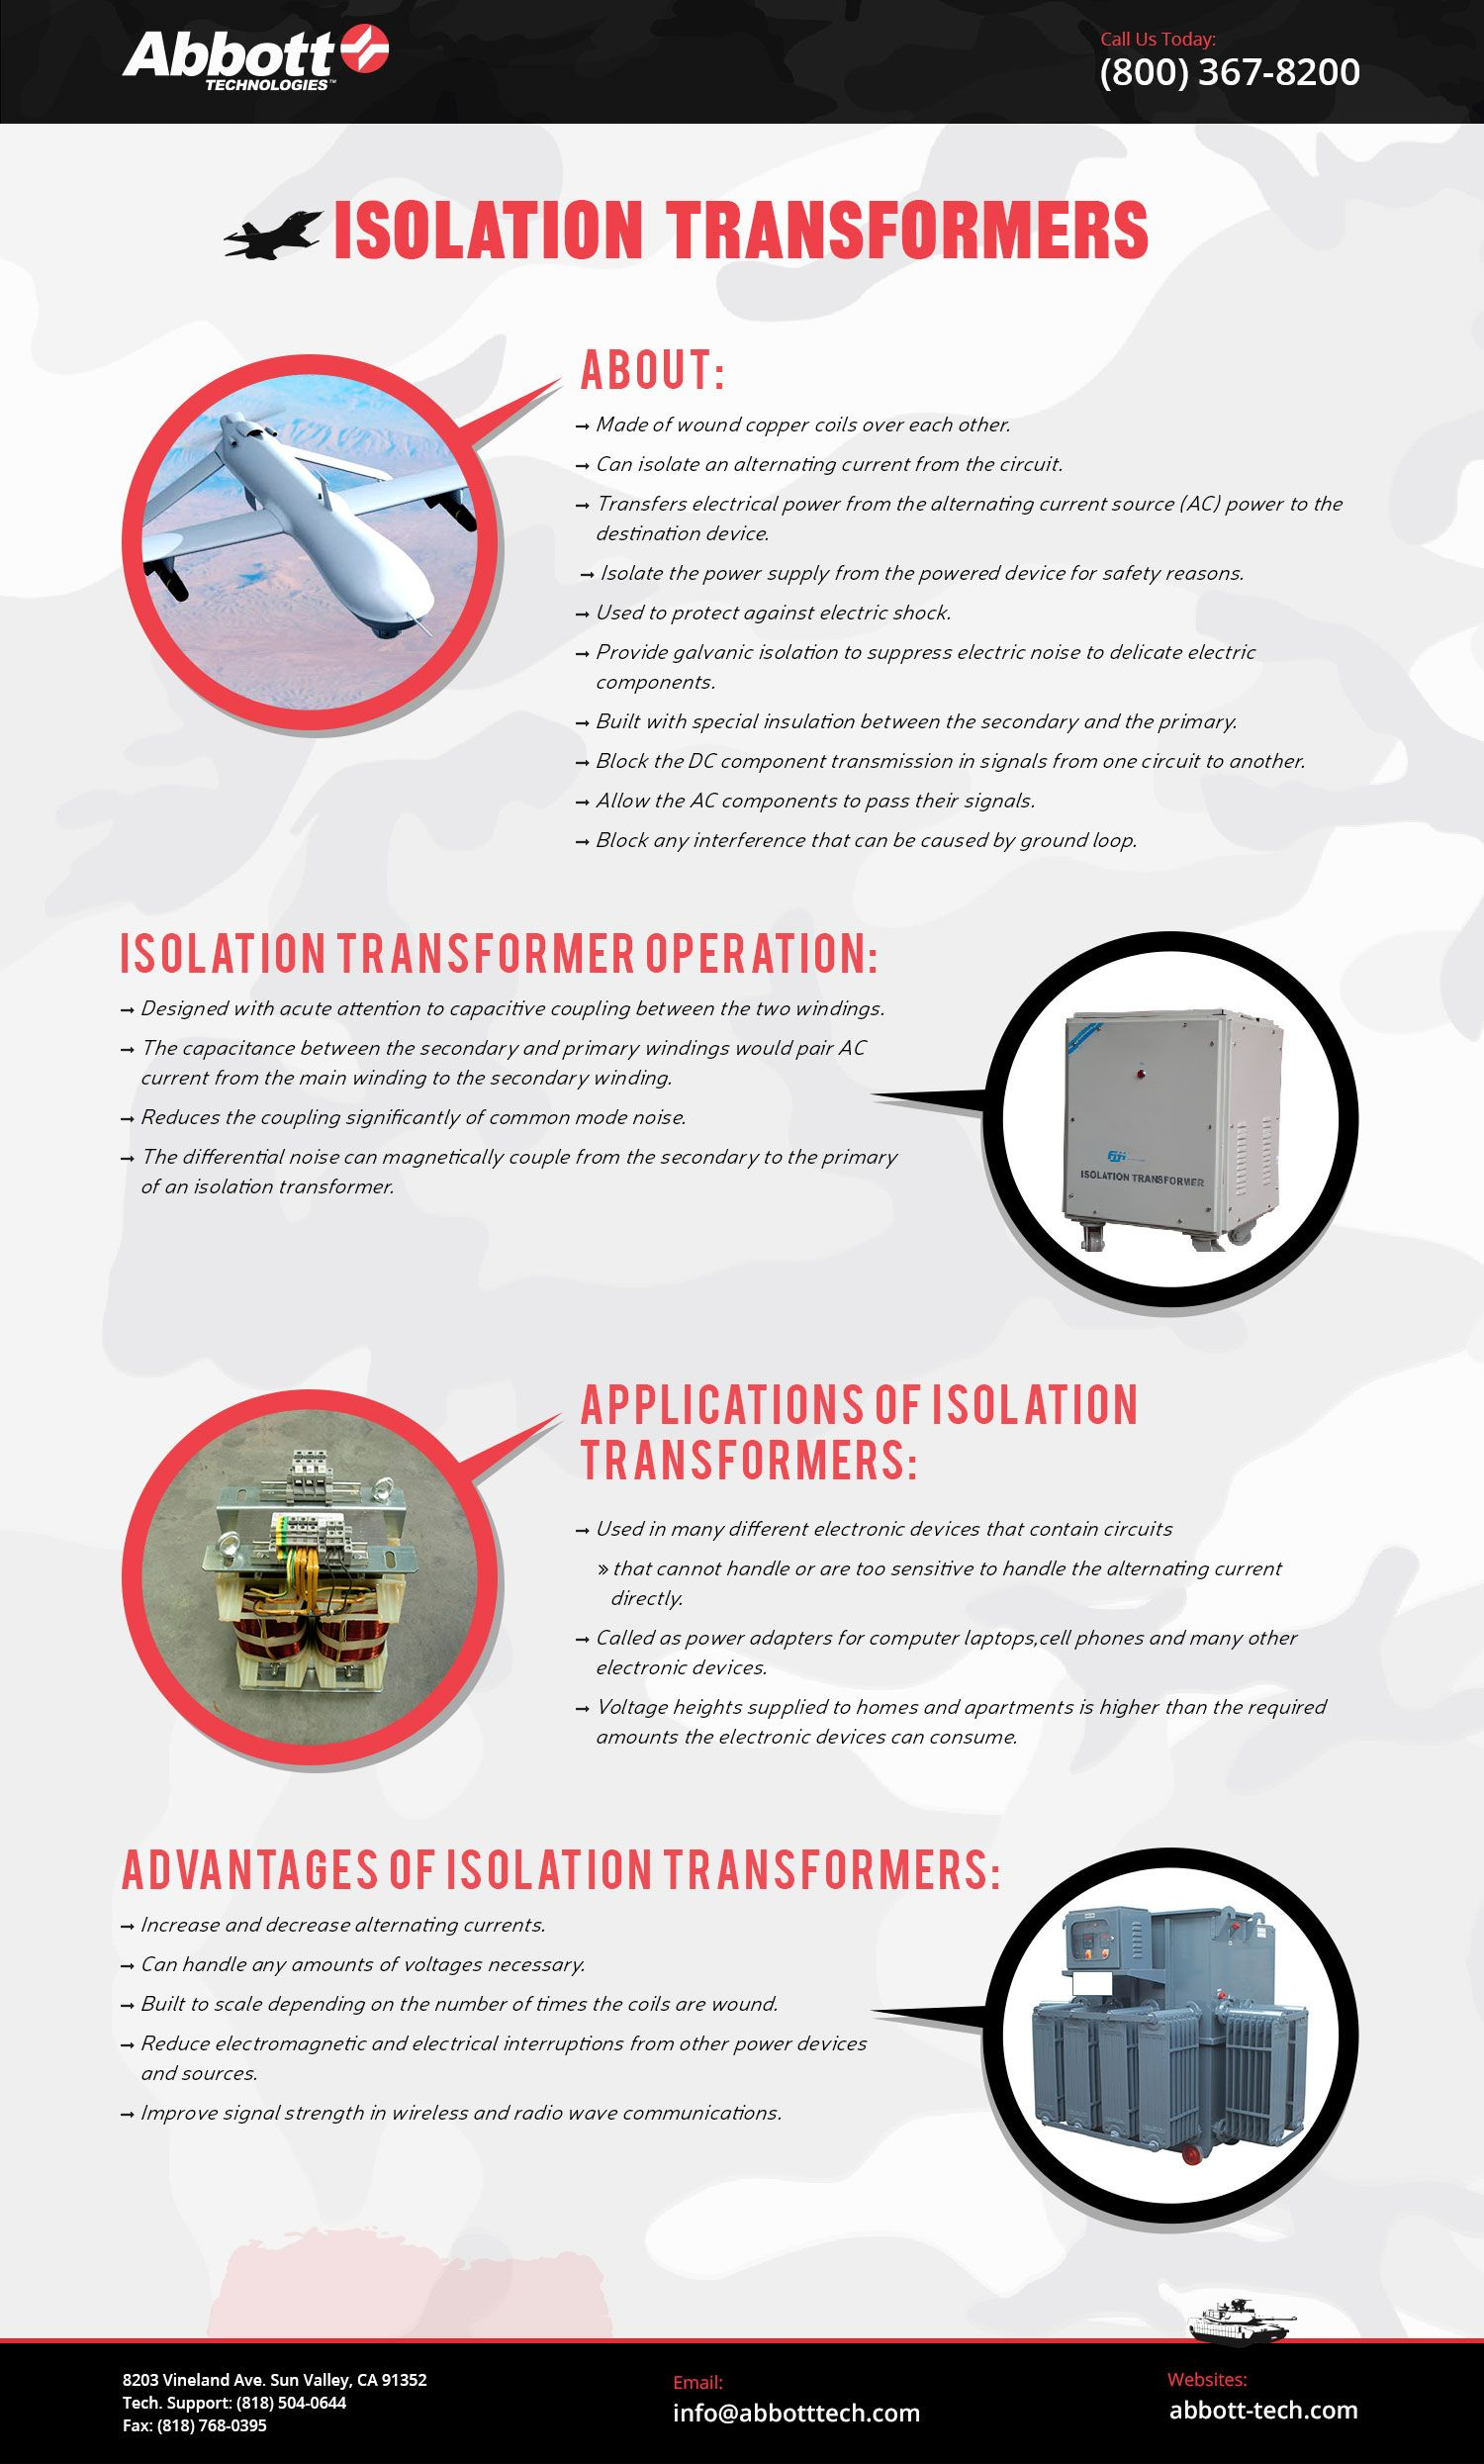 Isolation Transformers Are Used To Protect Against Electric Shock By Also Transformer Schematic Diagram On Alternating Current Source Providing Galvanic Suppress Noise Delicate Electronic